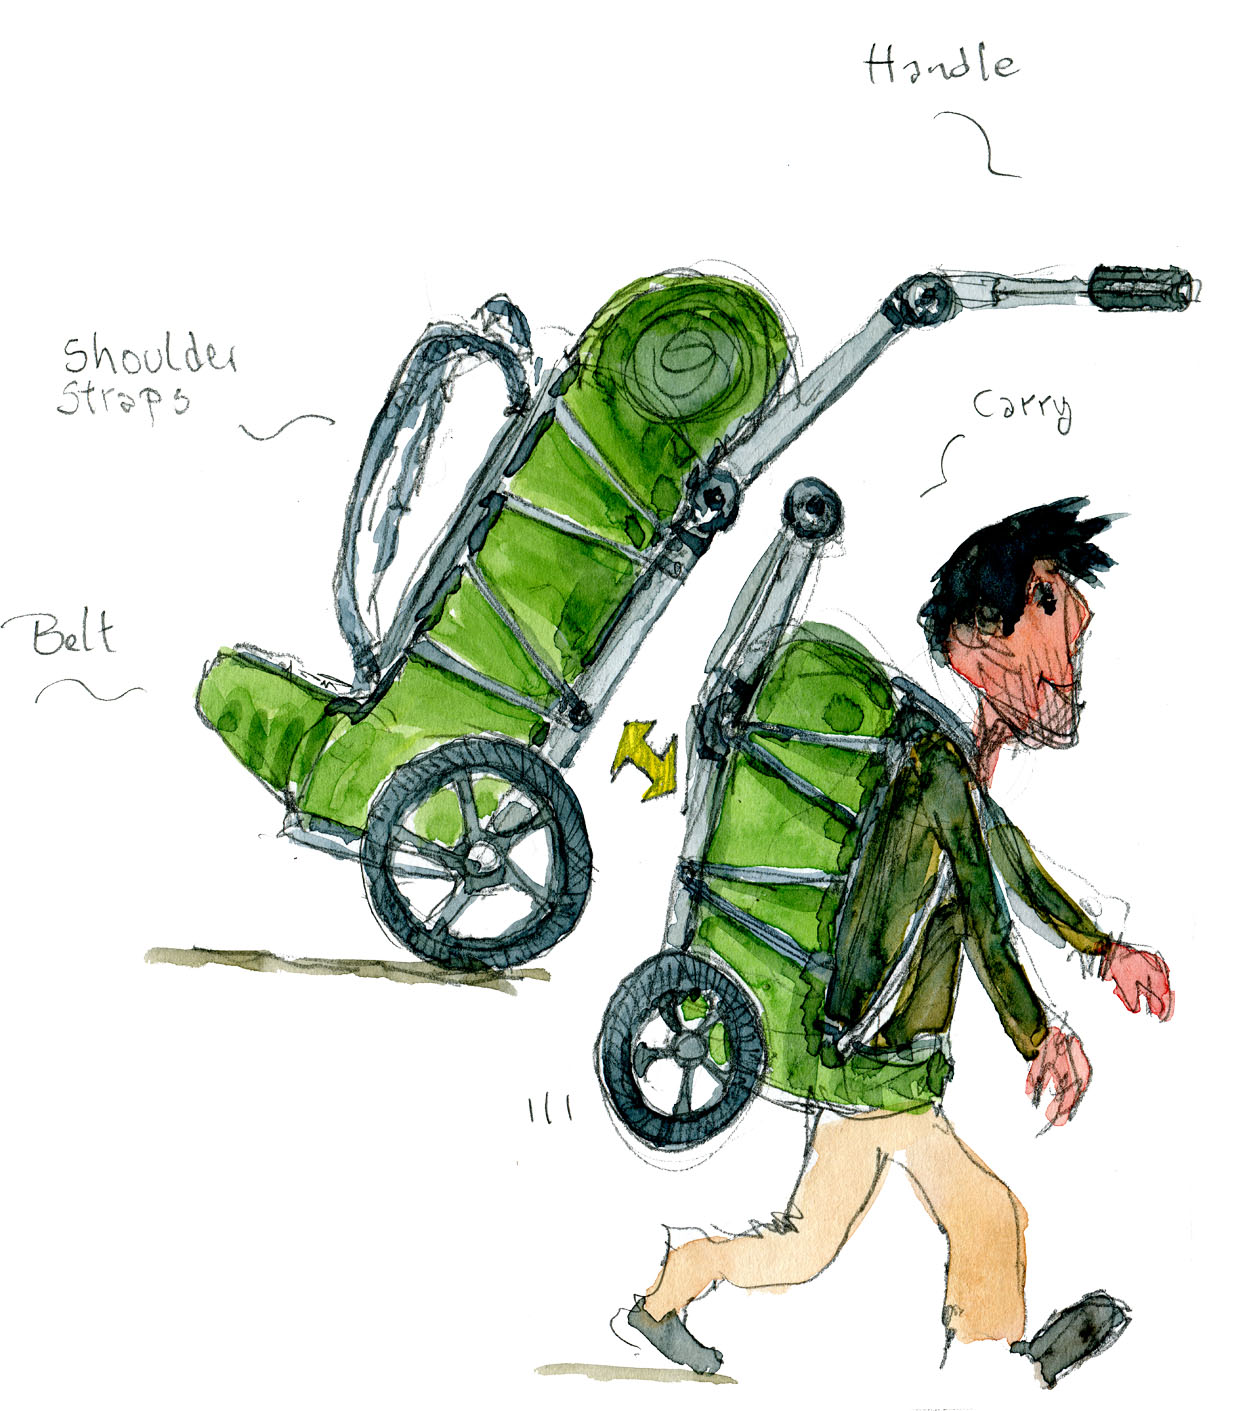 Burley travoy with backpack sketch - used as rolling and as backpack. Drawing by Frits Ahlefeldt